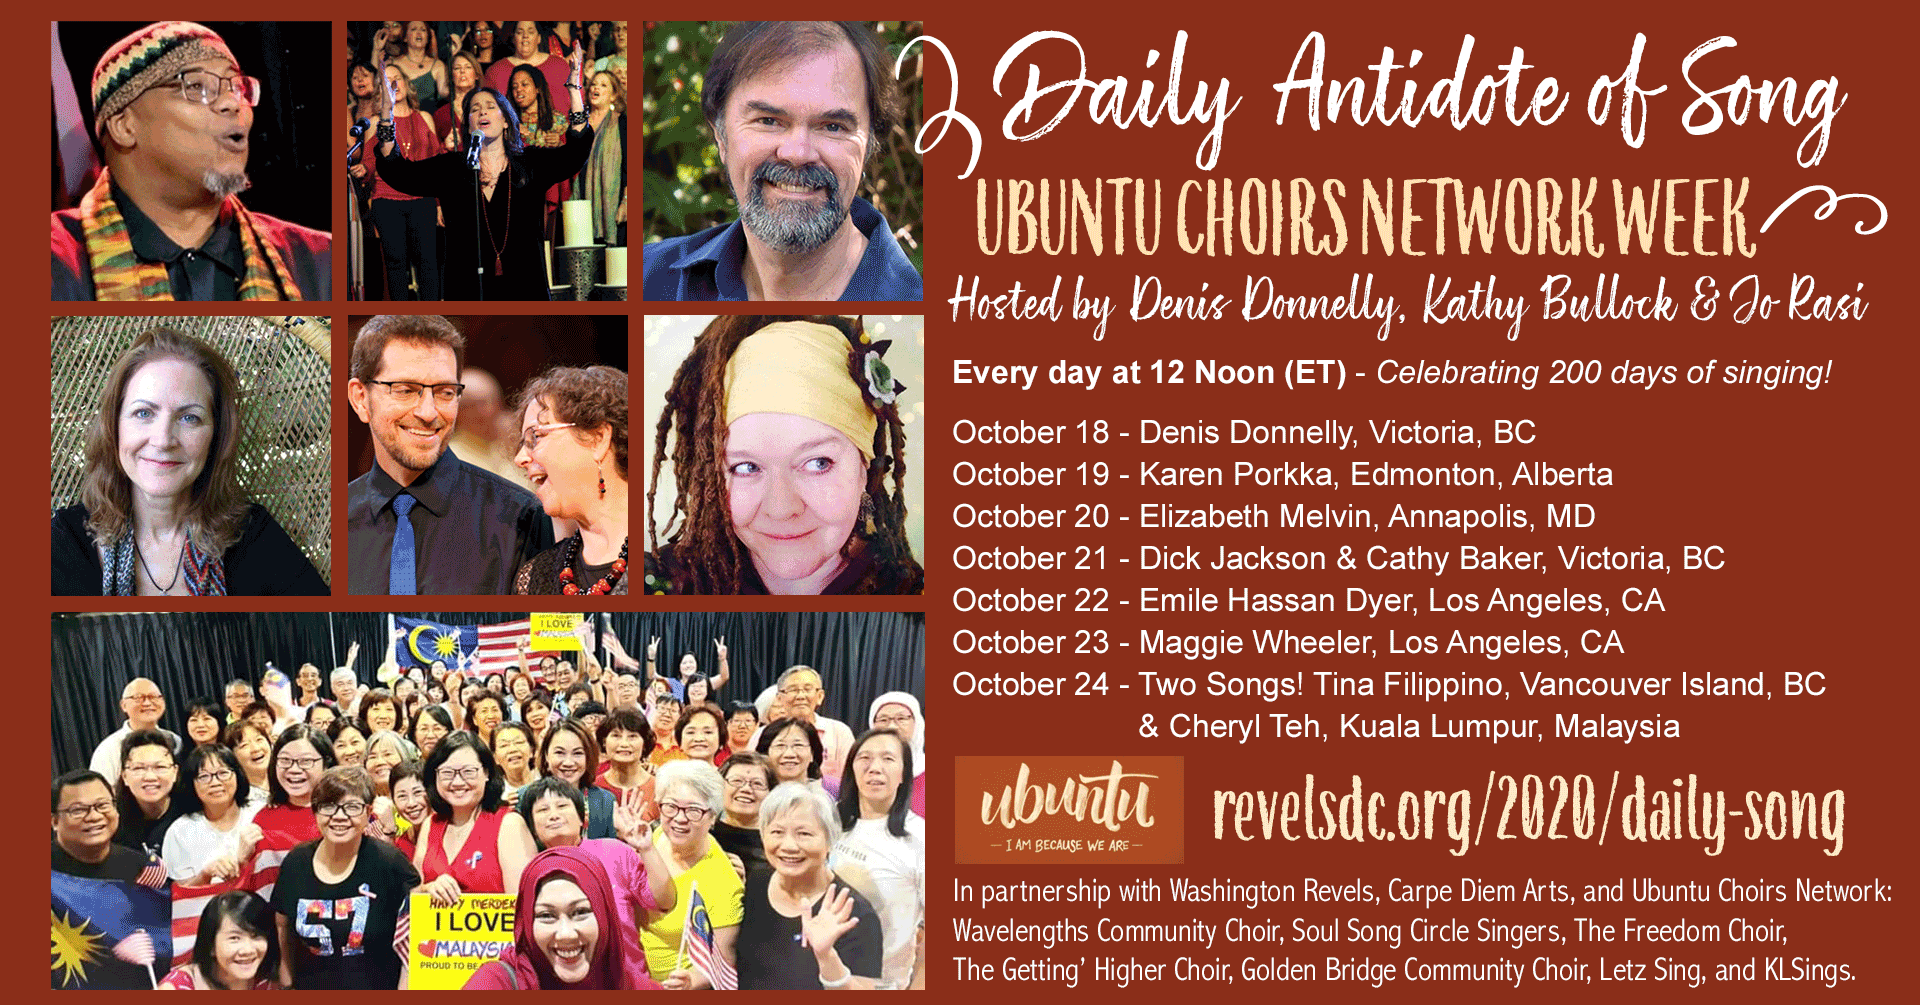 Ubuntu Choirs Network Week